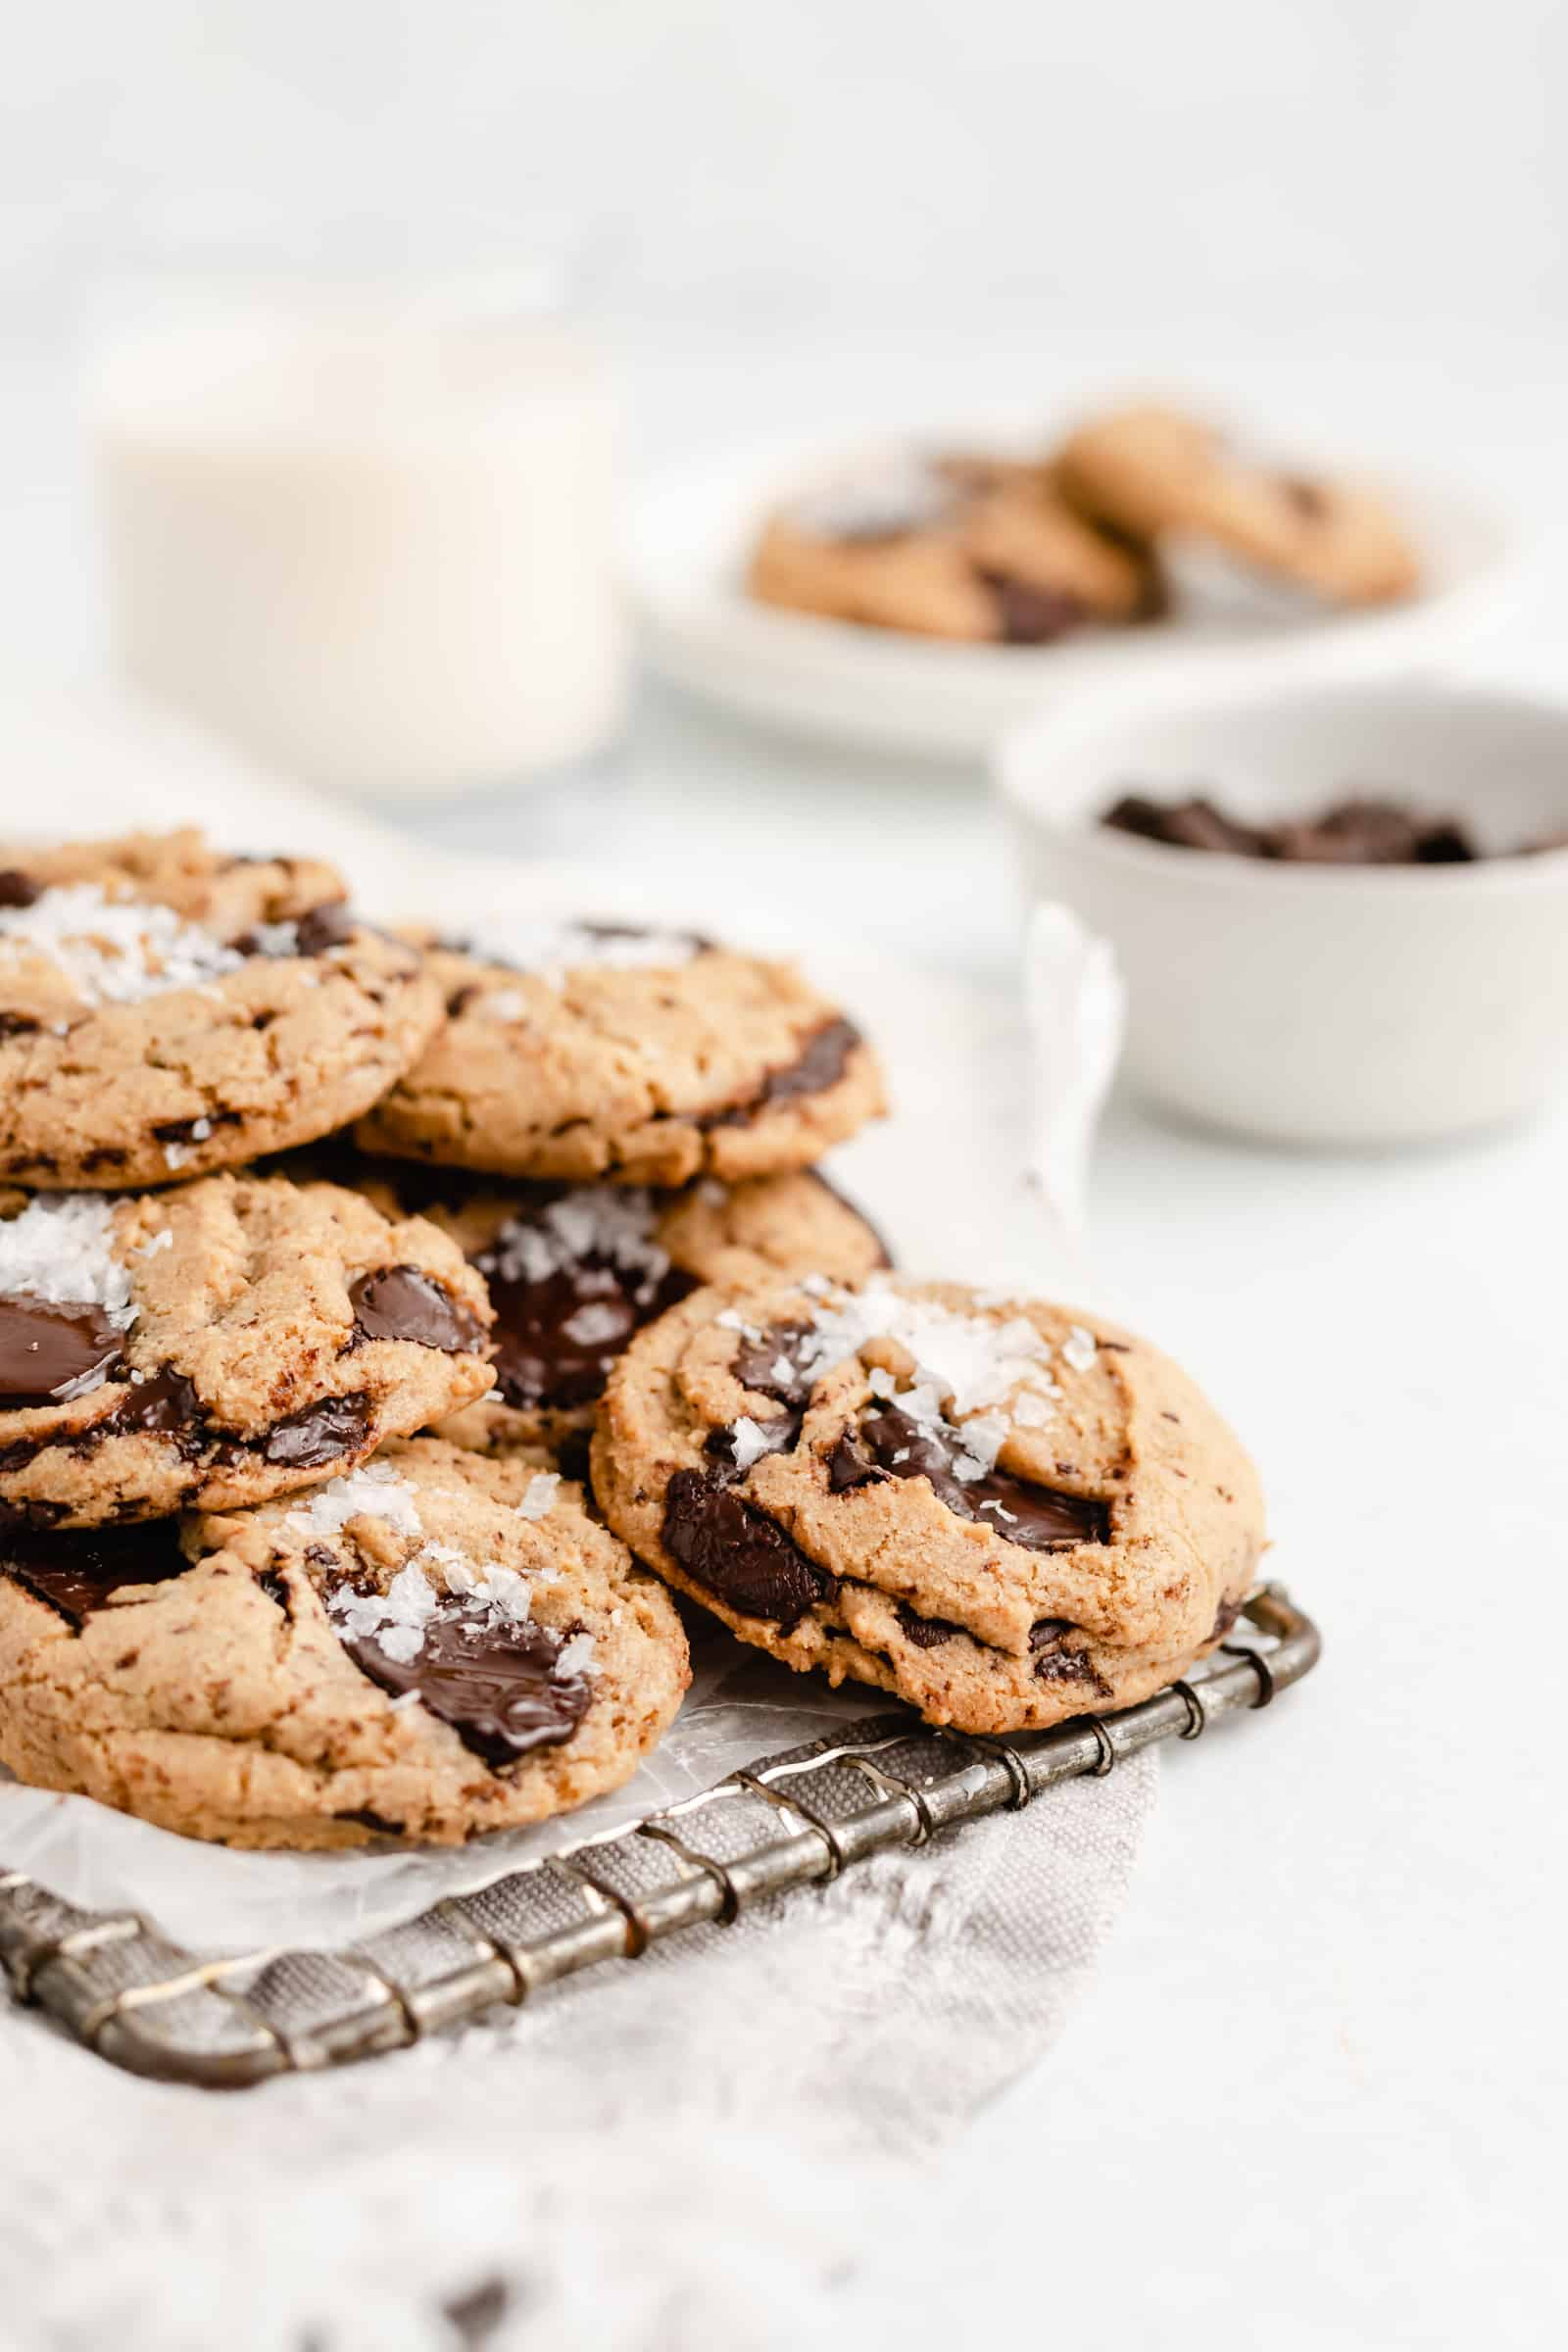 Chewy, soft, and highly addicting Tahini Chocolate Chip Cookie recipe